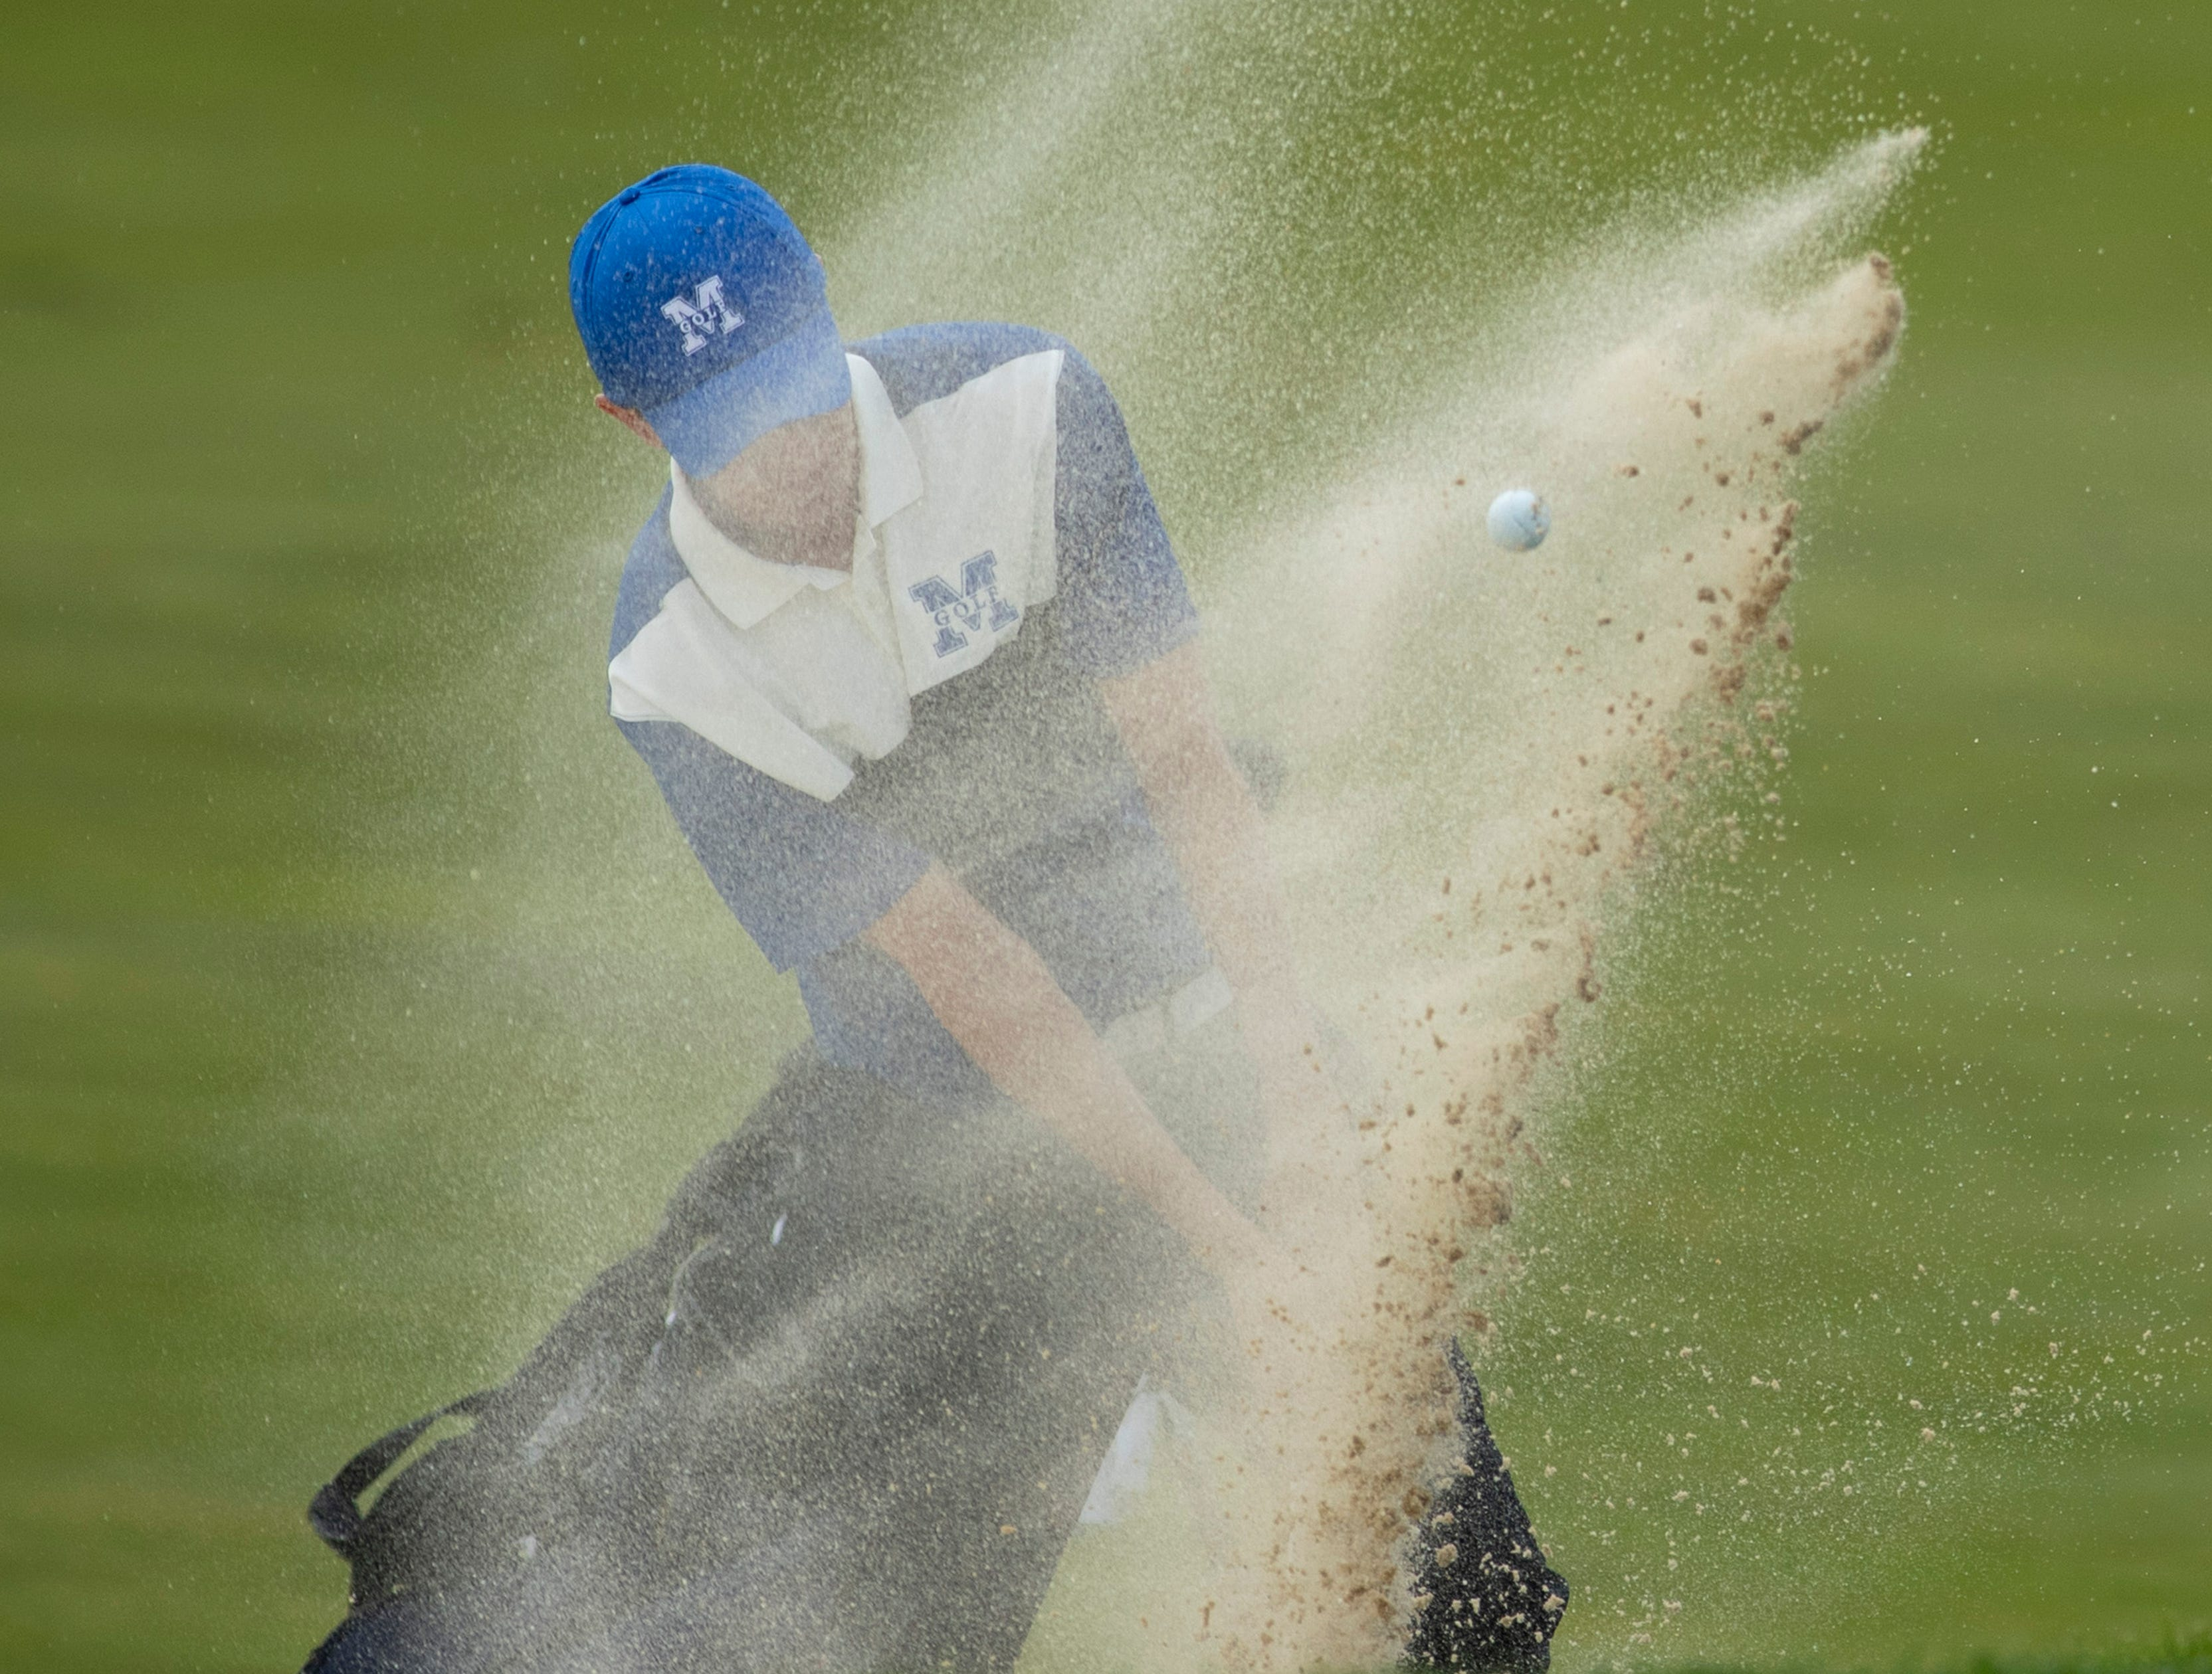 Memorial's Justin Drake hits out of the bunker at the 10th hole at Victoria National Golf Club, Saturday afternoon, April 13, 2019.